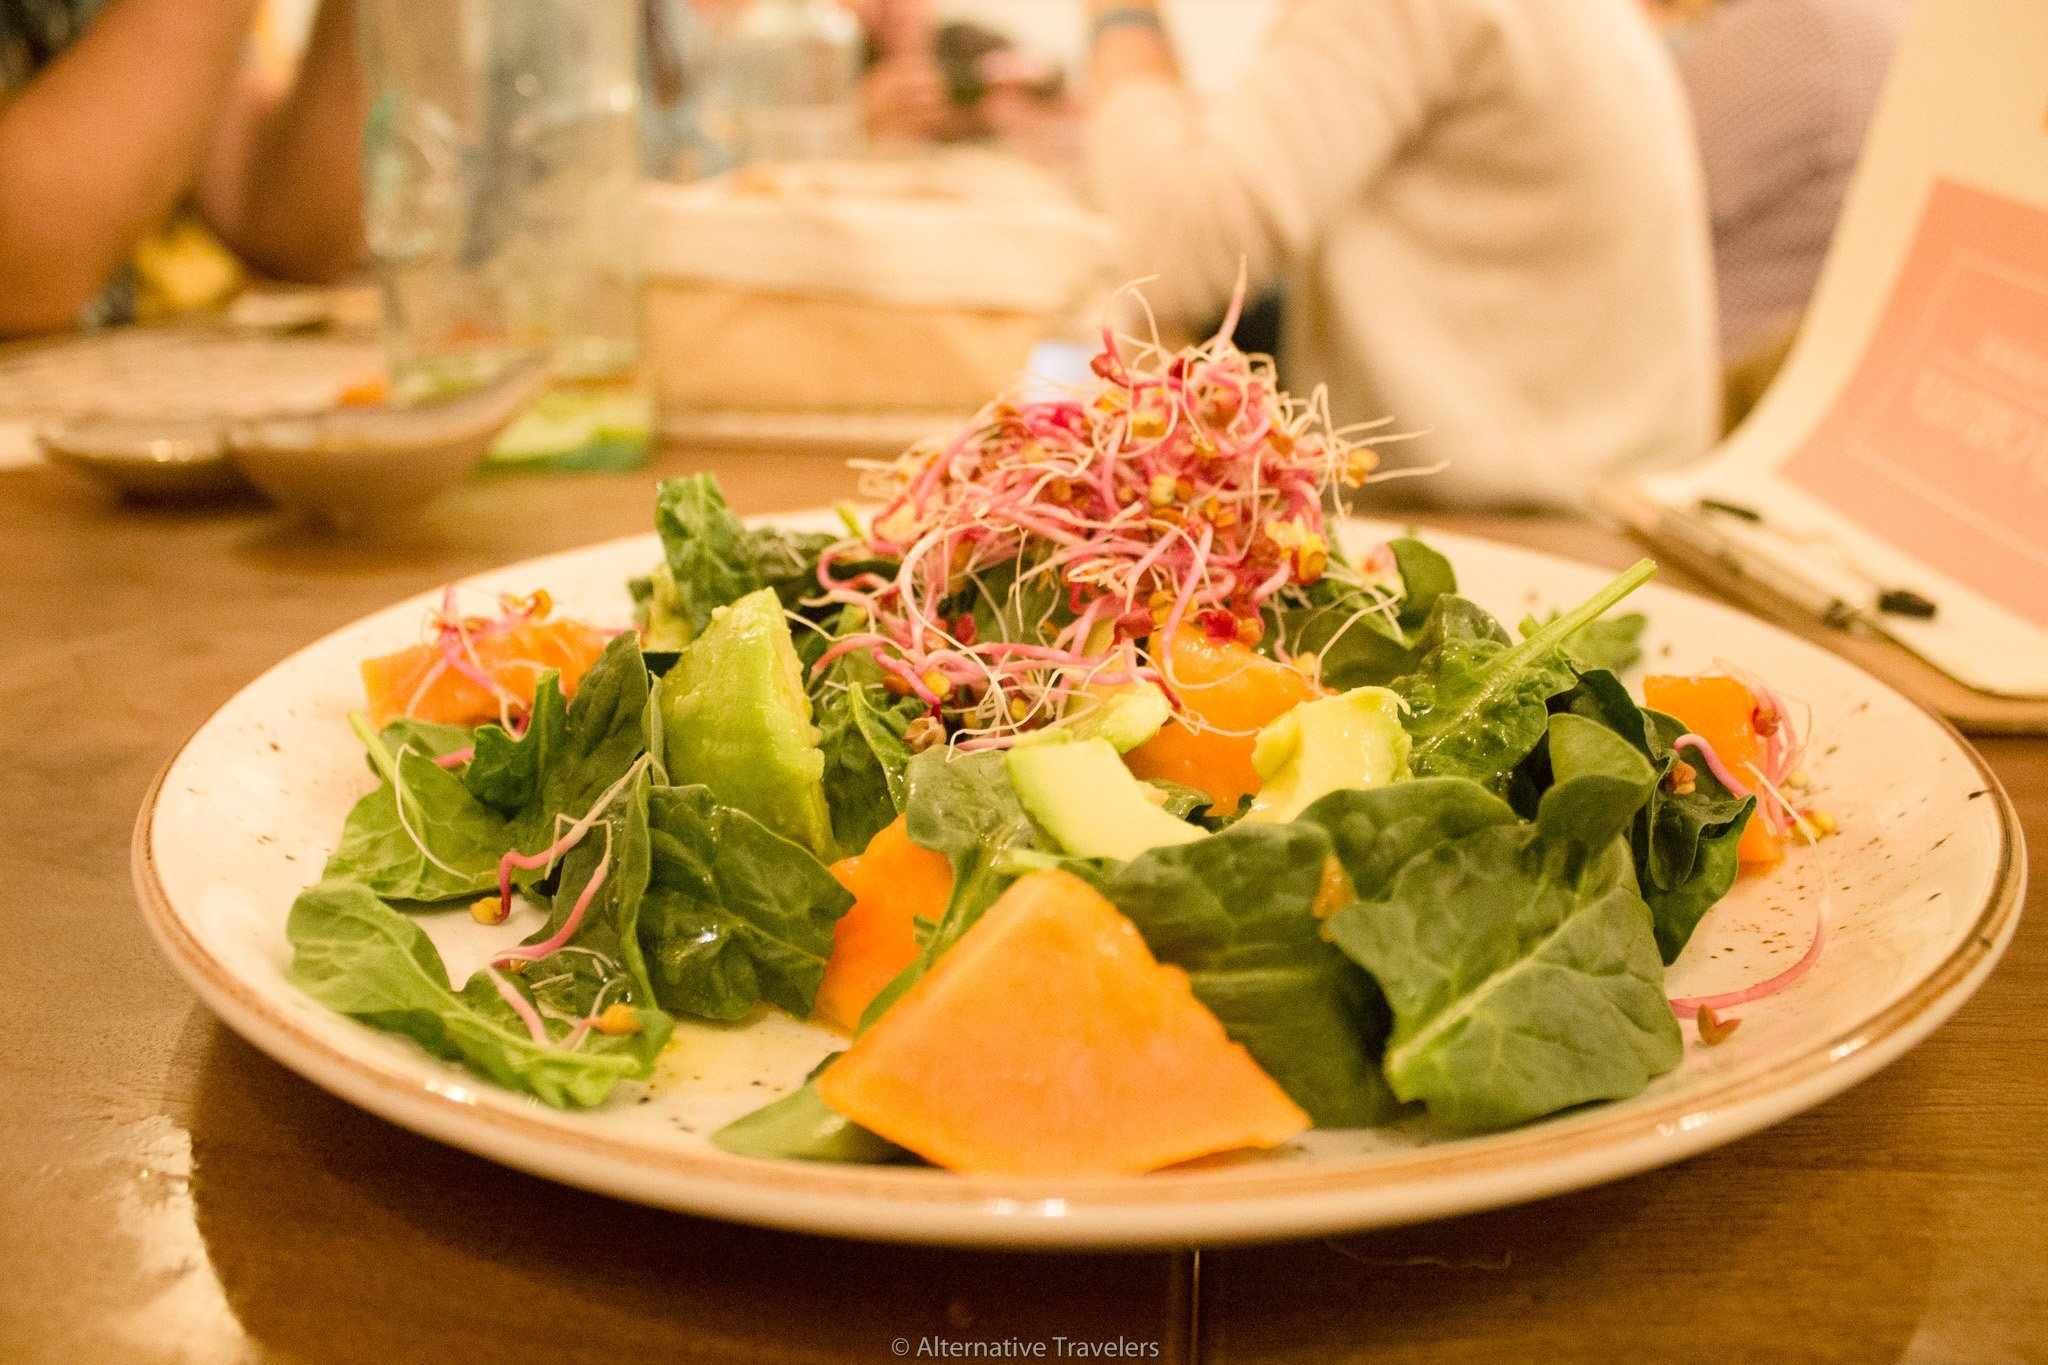 Papaya and Avocado salad at La Tia Carlota | AlternativeTravelers.com